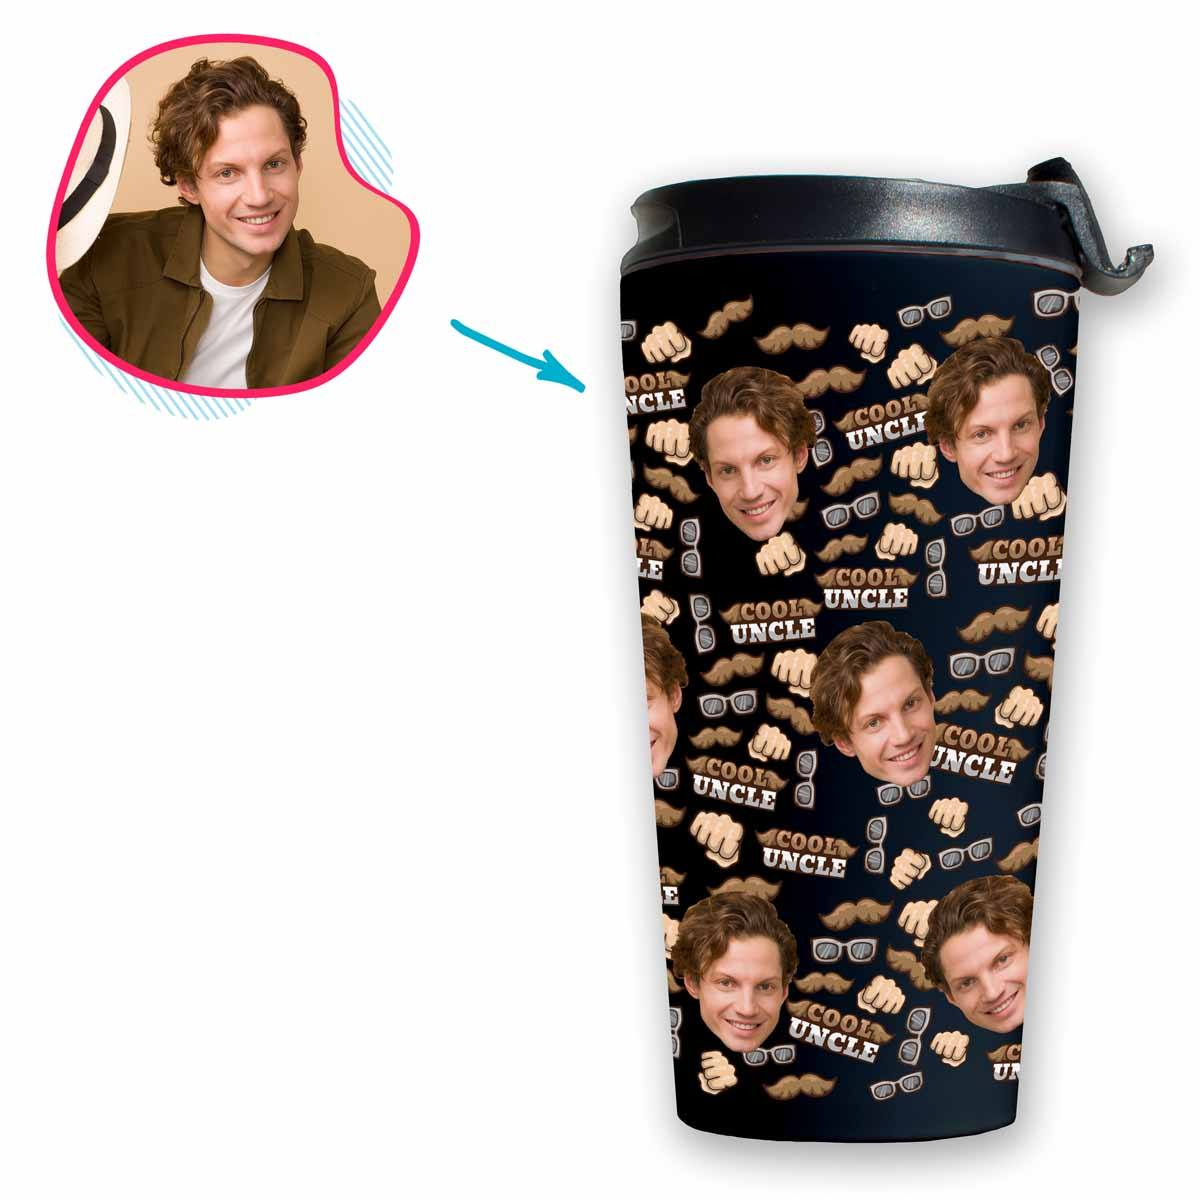 Dark Uncle personalized travel mug with photo of face printed on it